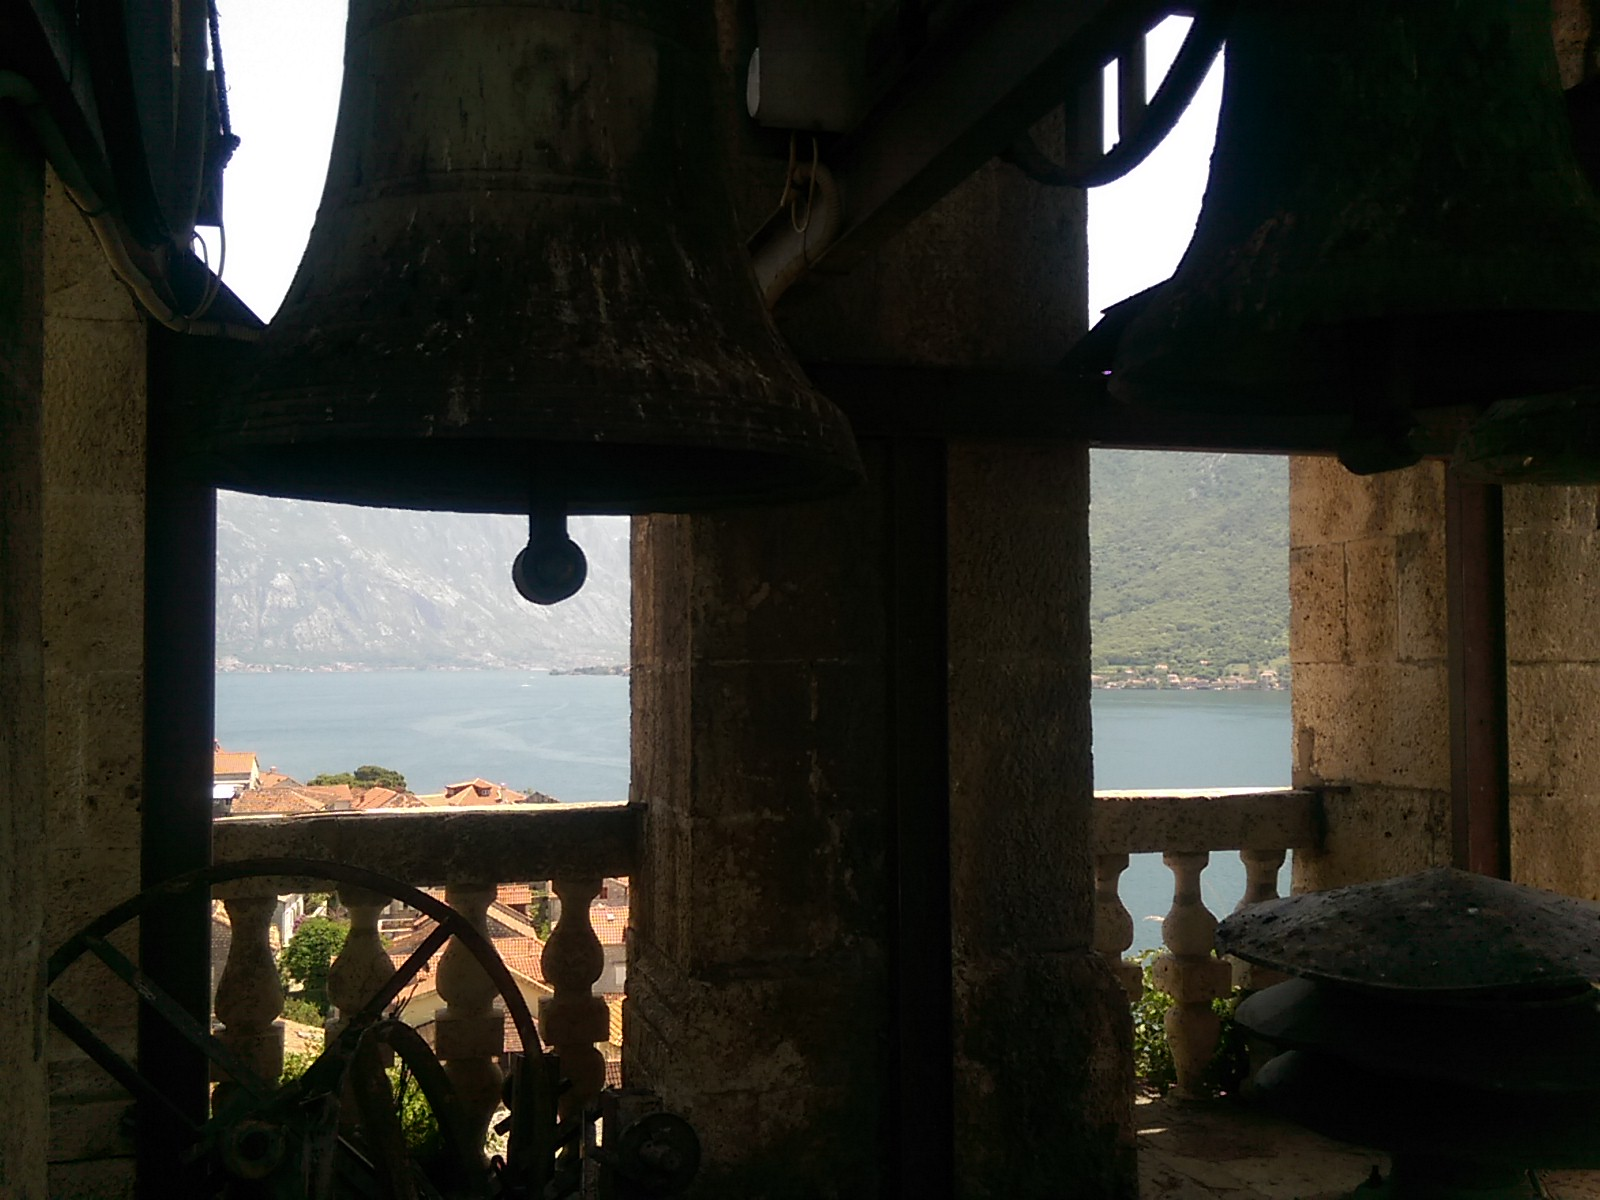 Old bells silhouetted against a backdrop of sea and mountains